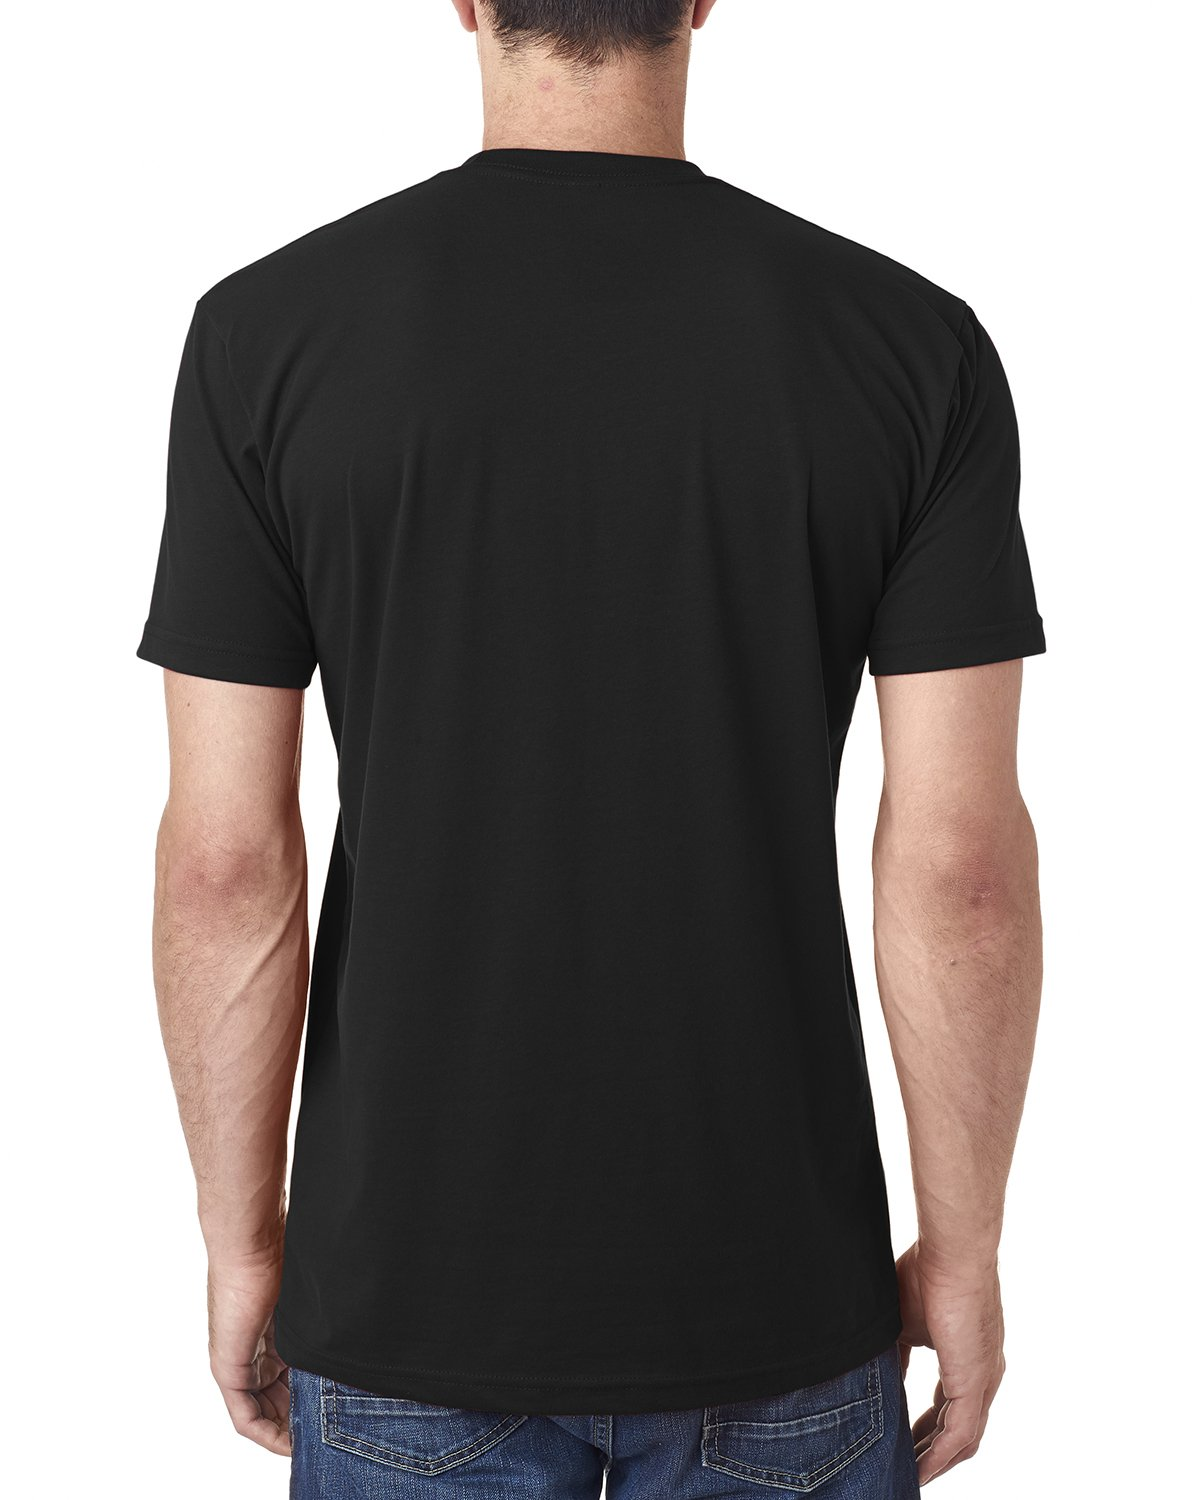 ad87e81026fe5f Amazon.com  6410 Next Level Men s Premium Fitted Sueded Crewneck T-Shirt   Clothing